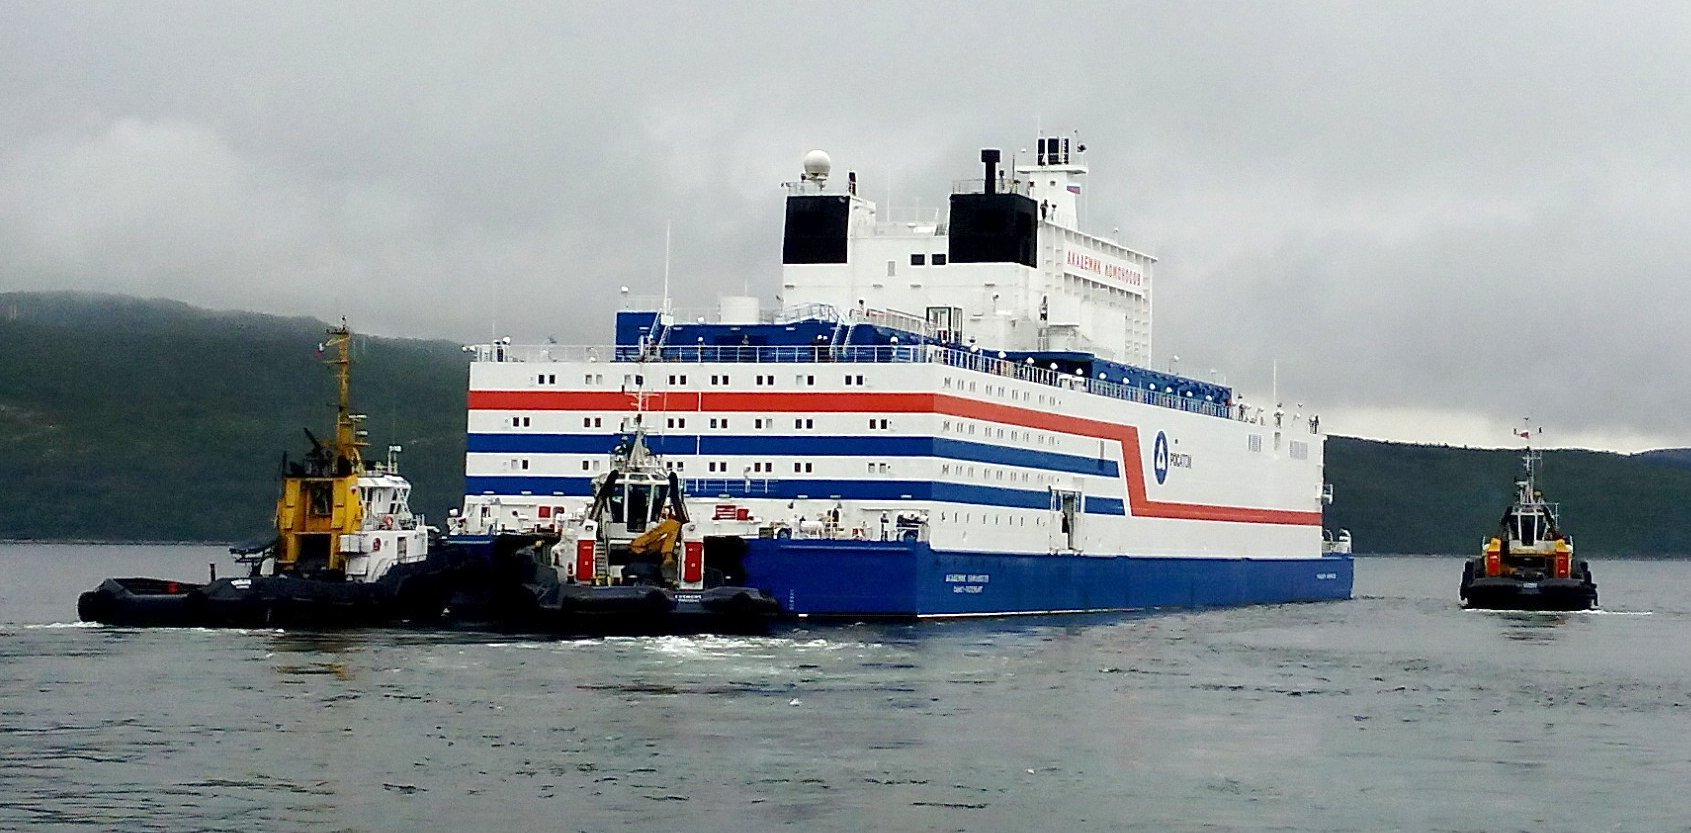 ThorCon Floating Nuclear Plant